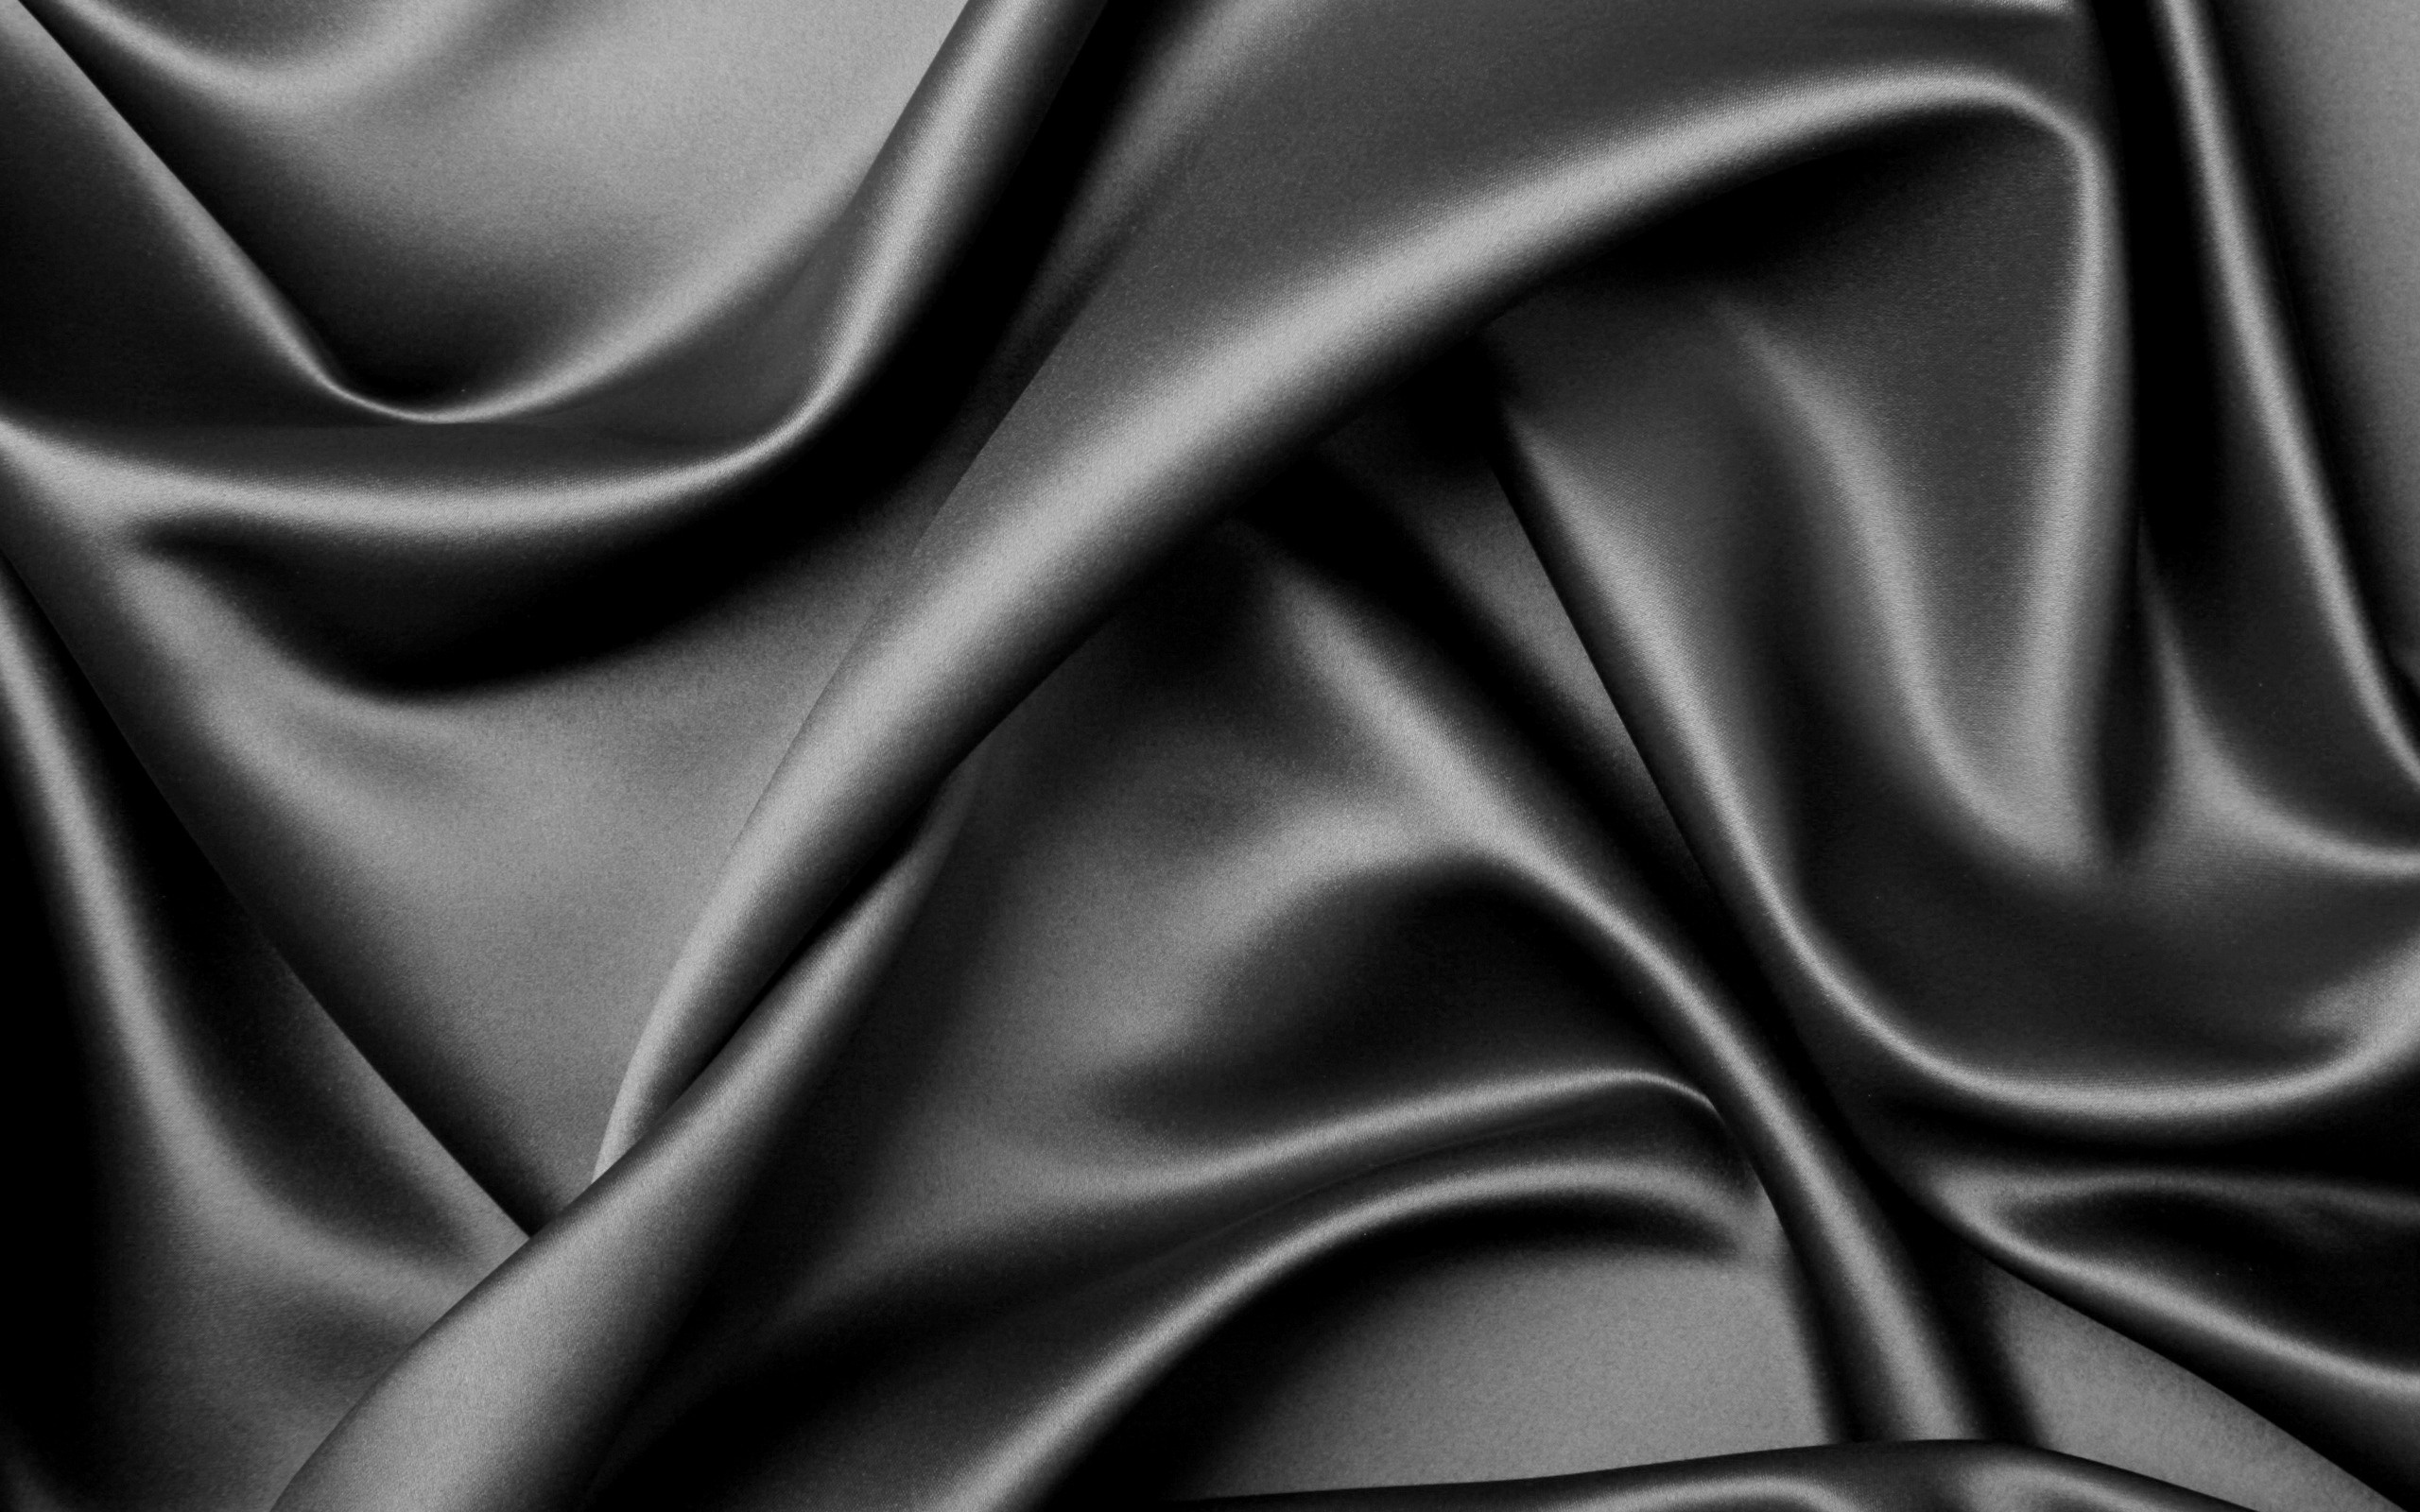 Black Velvet 3d Abstract Wide Hd Desktop Wallp 2374 Hd